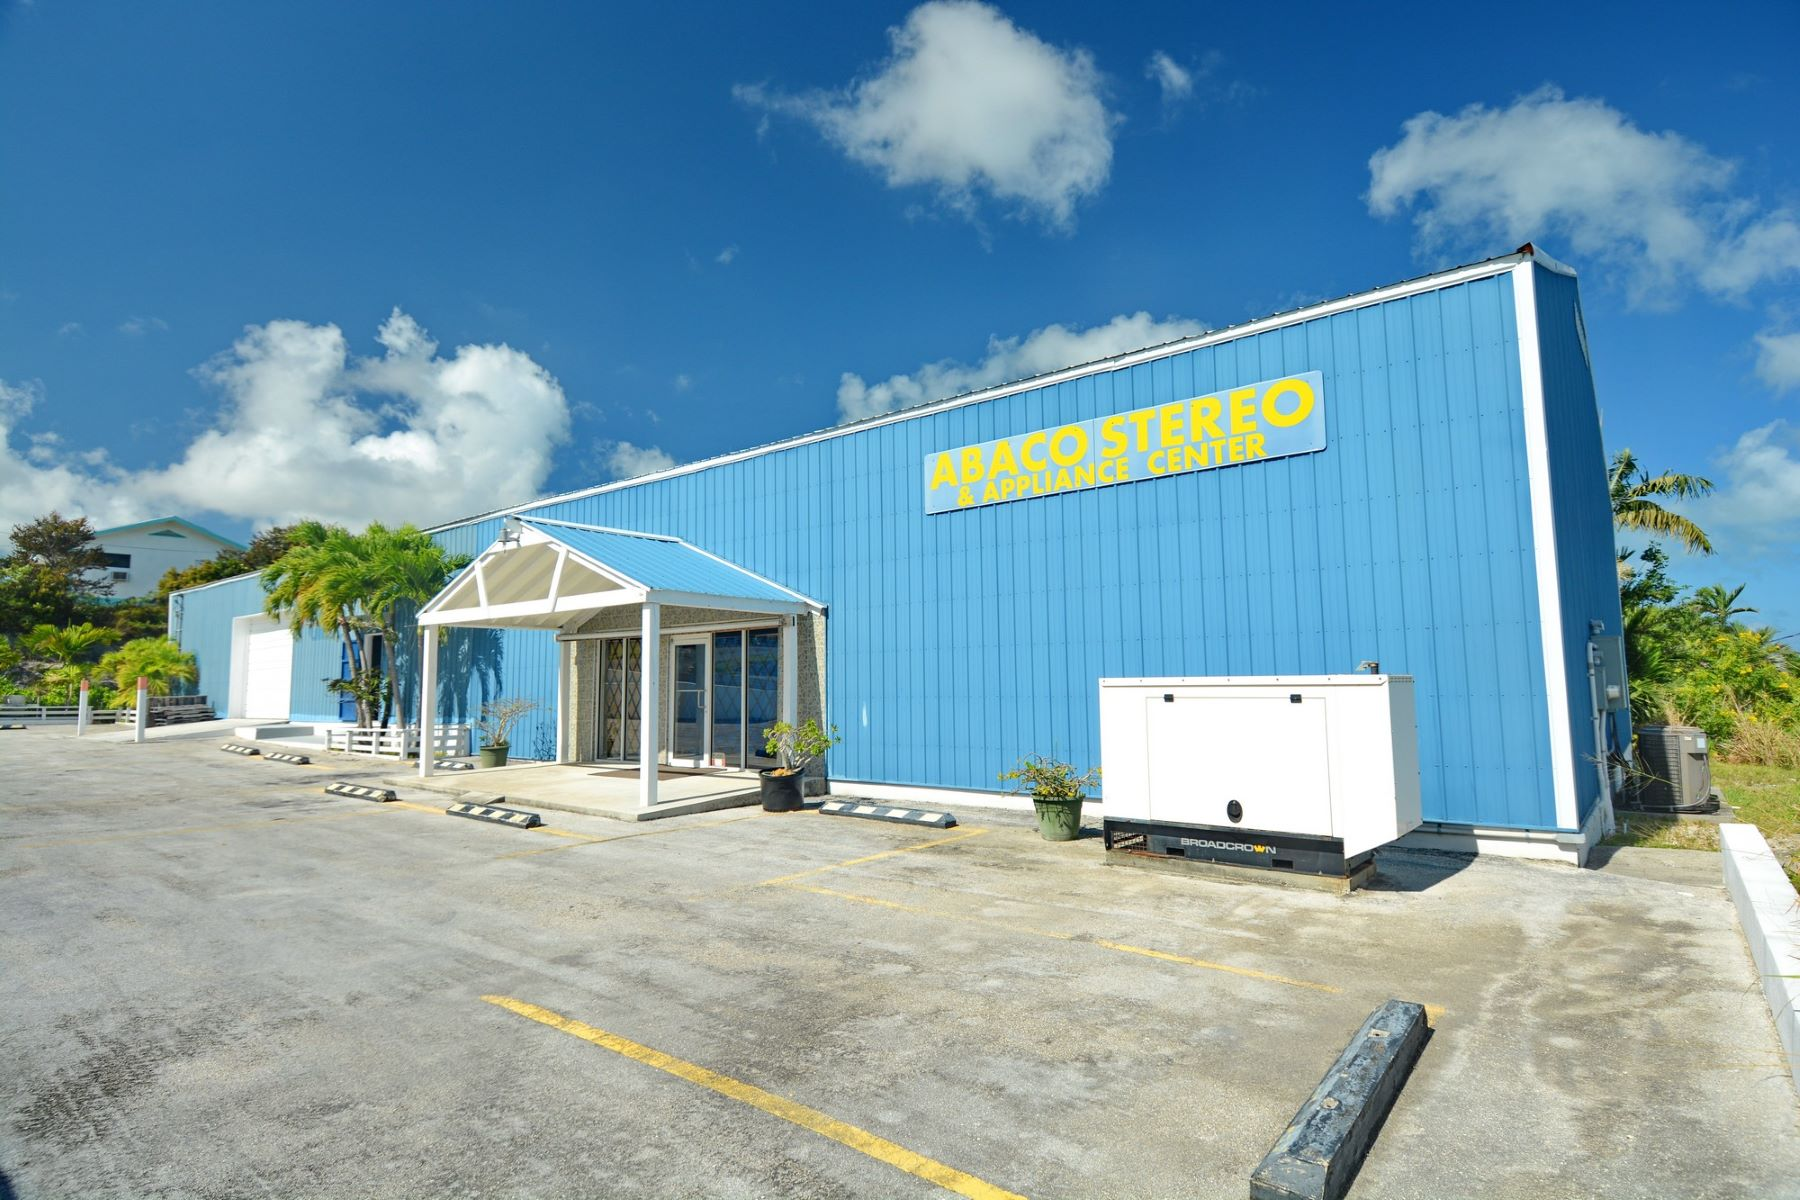 Commercial for Sale at Abaco Stereo Building Marsh Harbour, Abaco Bahamas